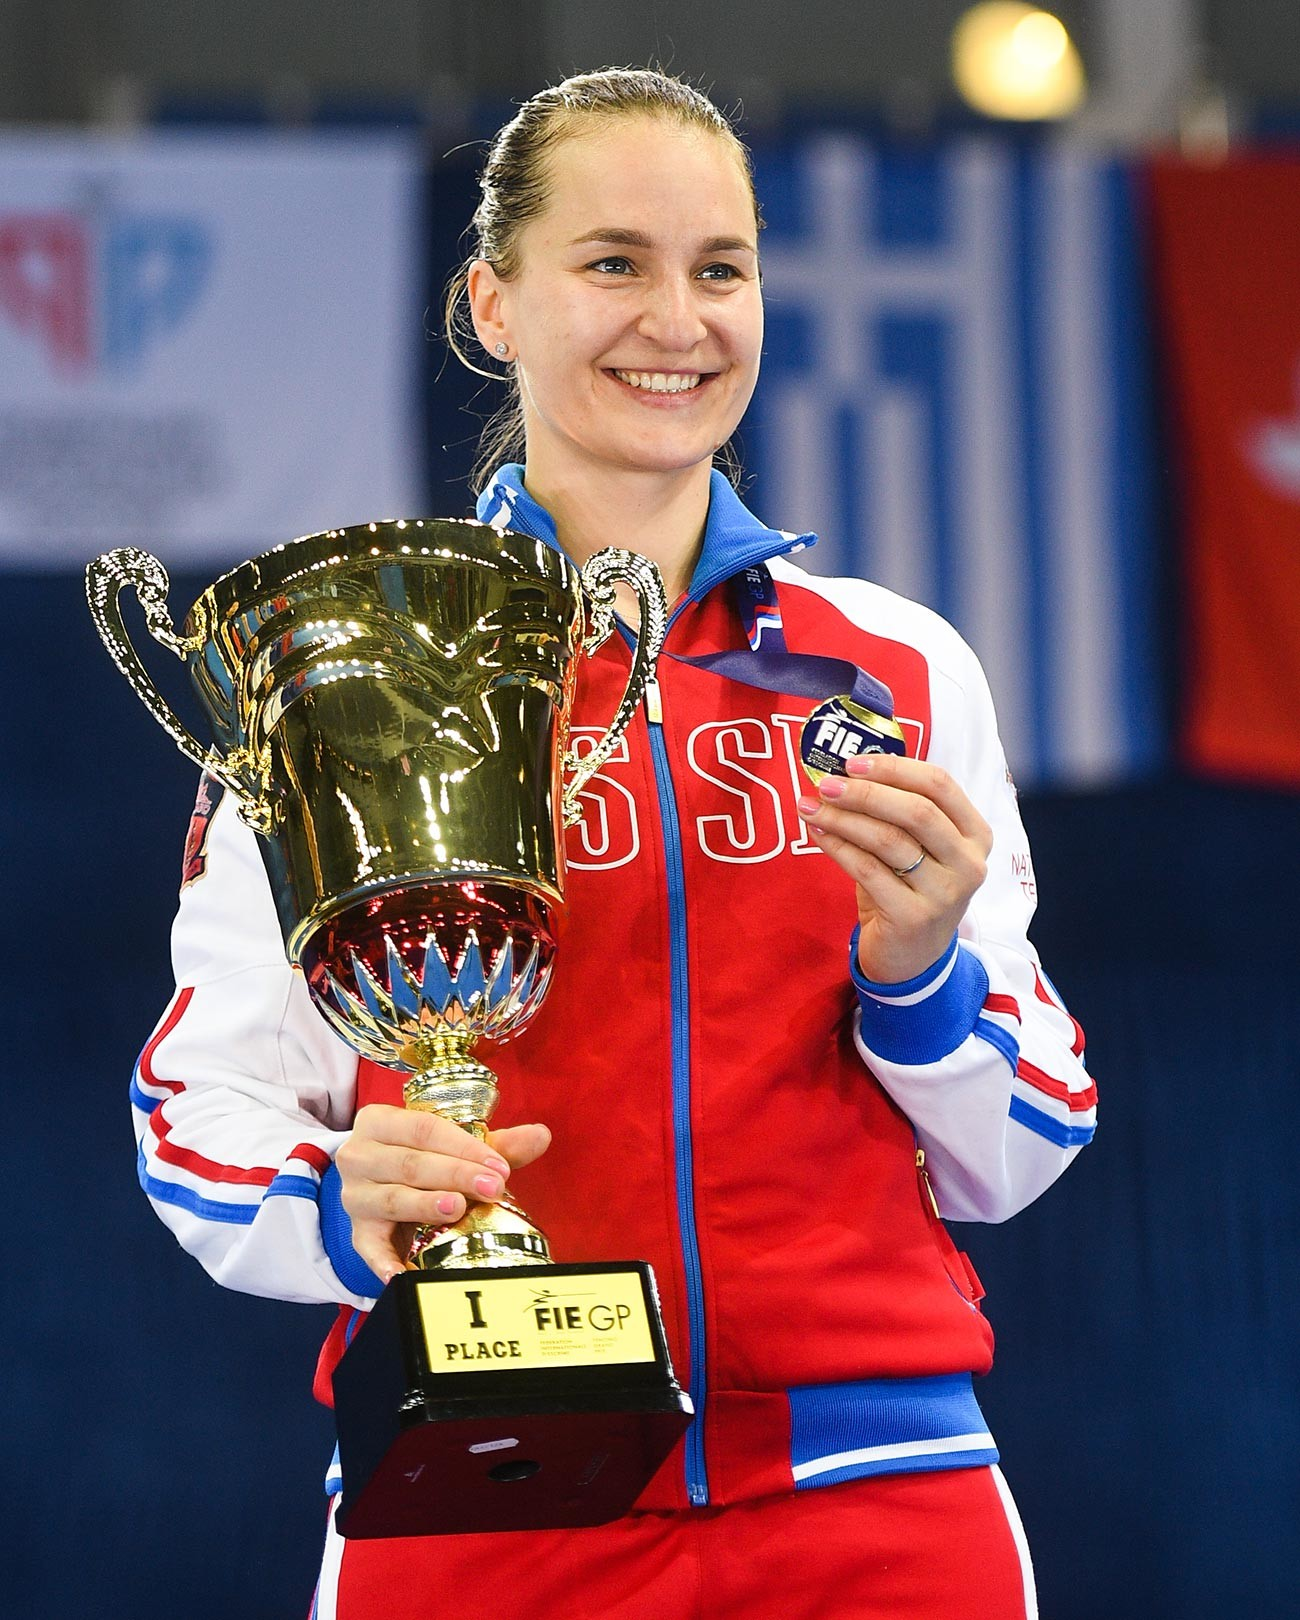 The winner in the competition of the personal championship among women at the international fencing tournament